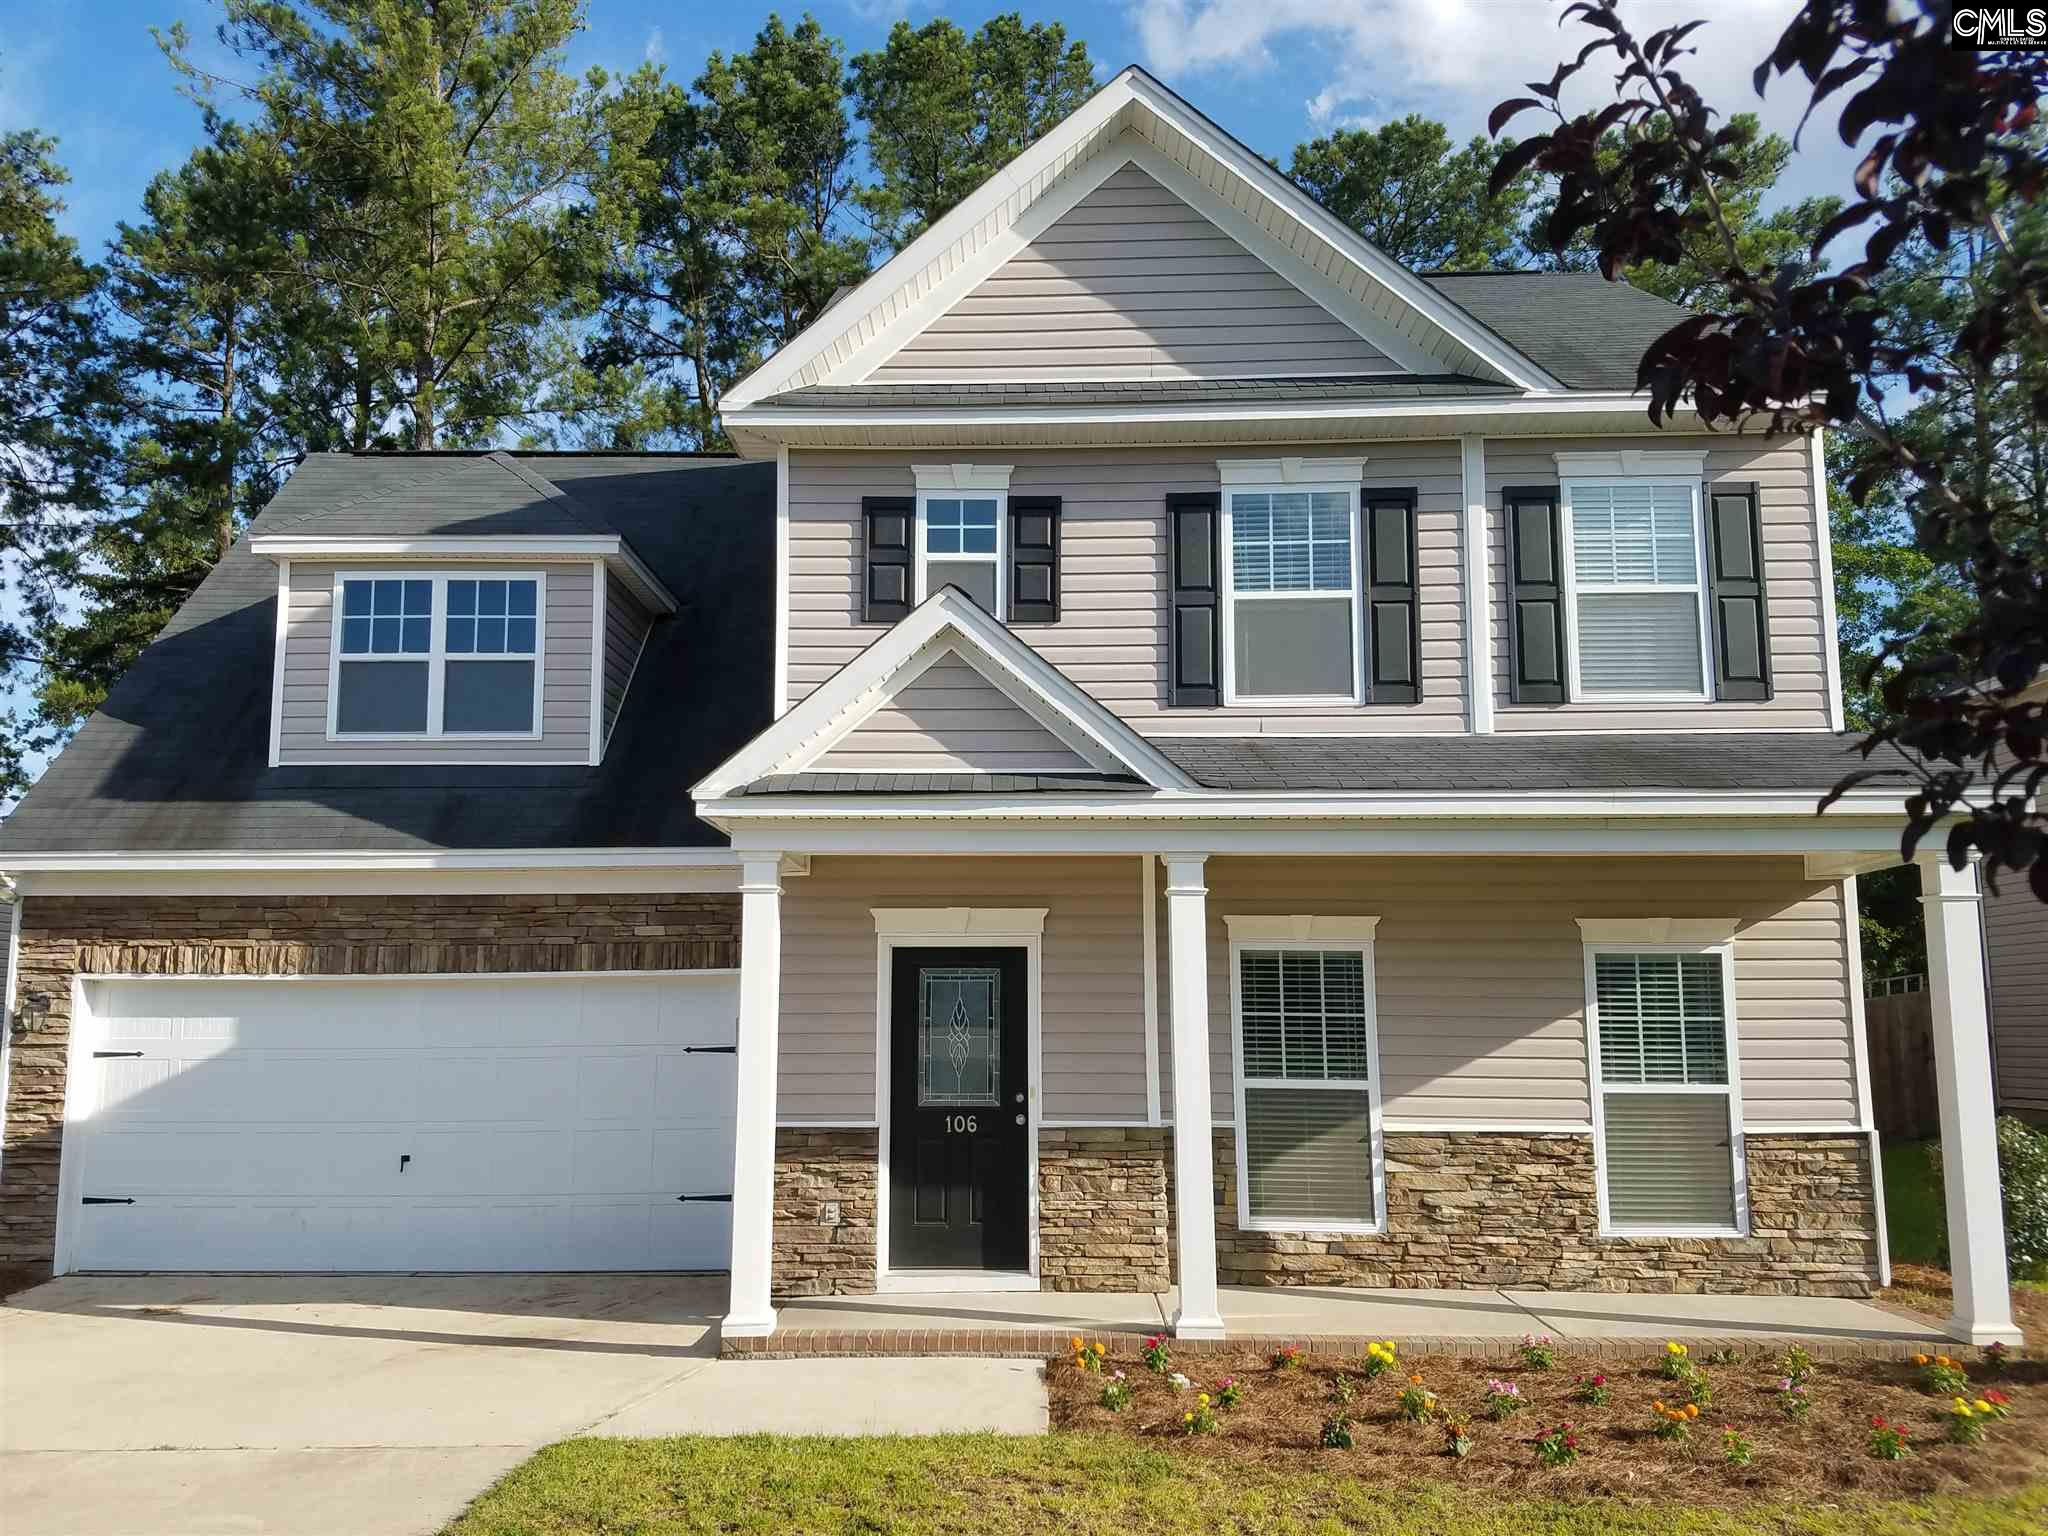 106 Greenbank Lexington, SC 29073